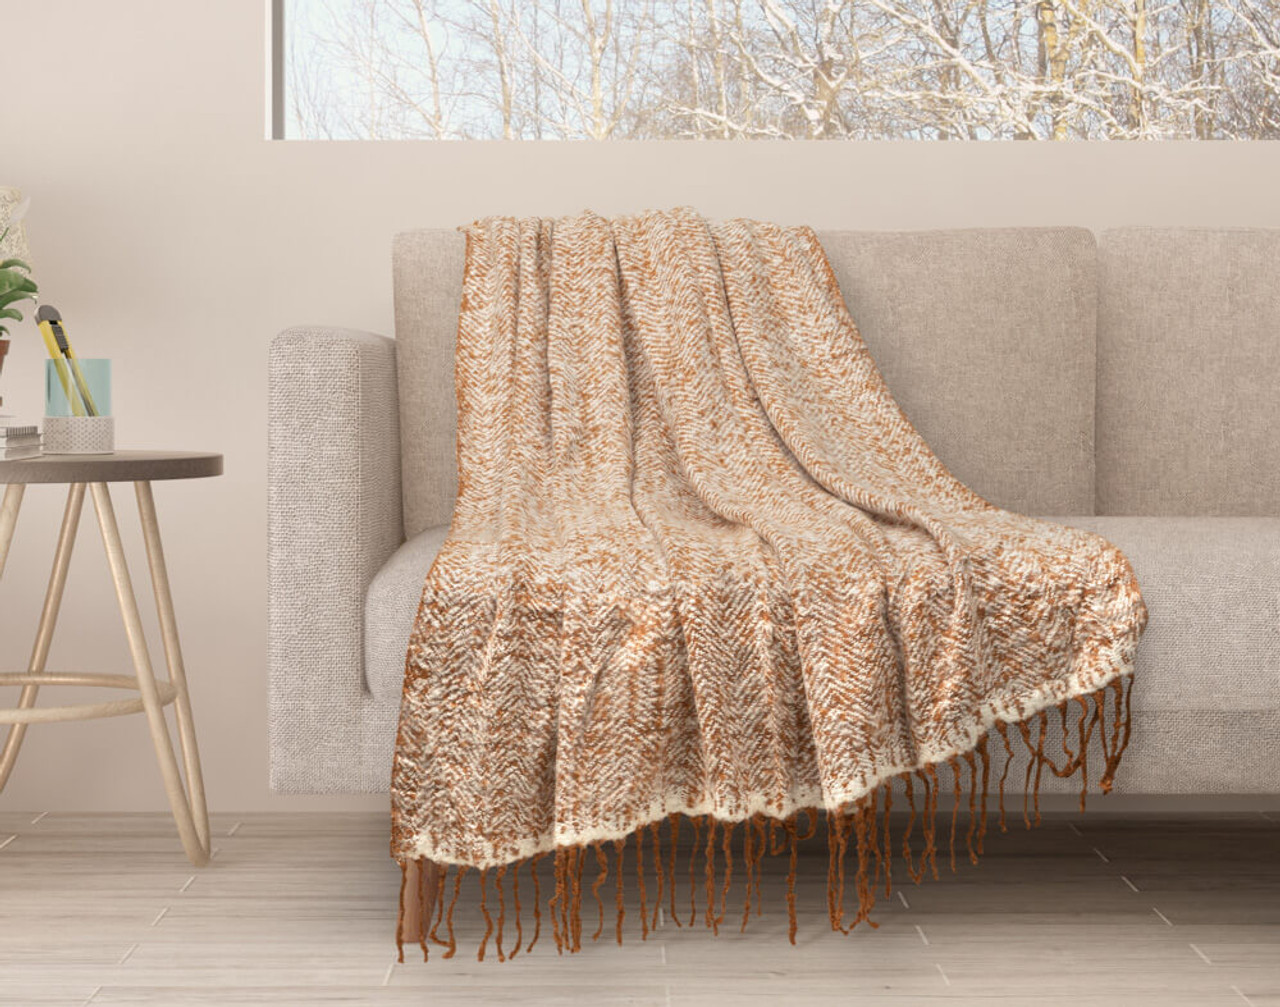 Our Copper Herringbone Knit Fringe Throw draped over a couch.